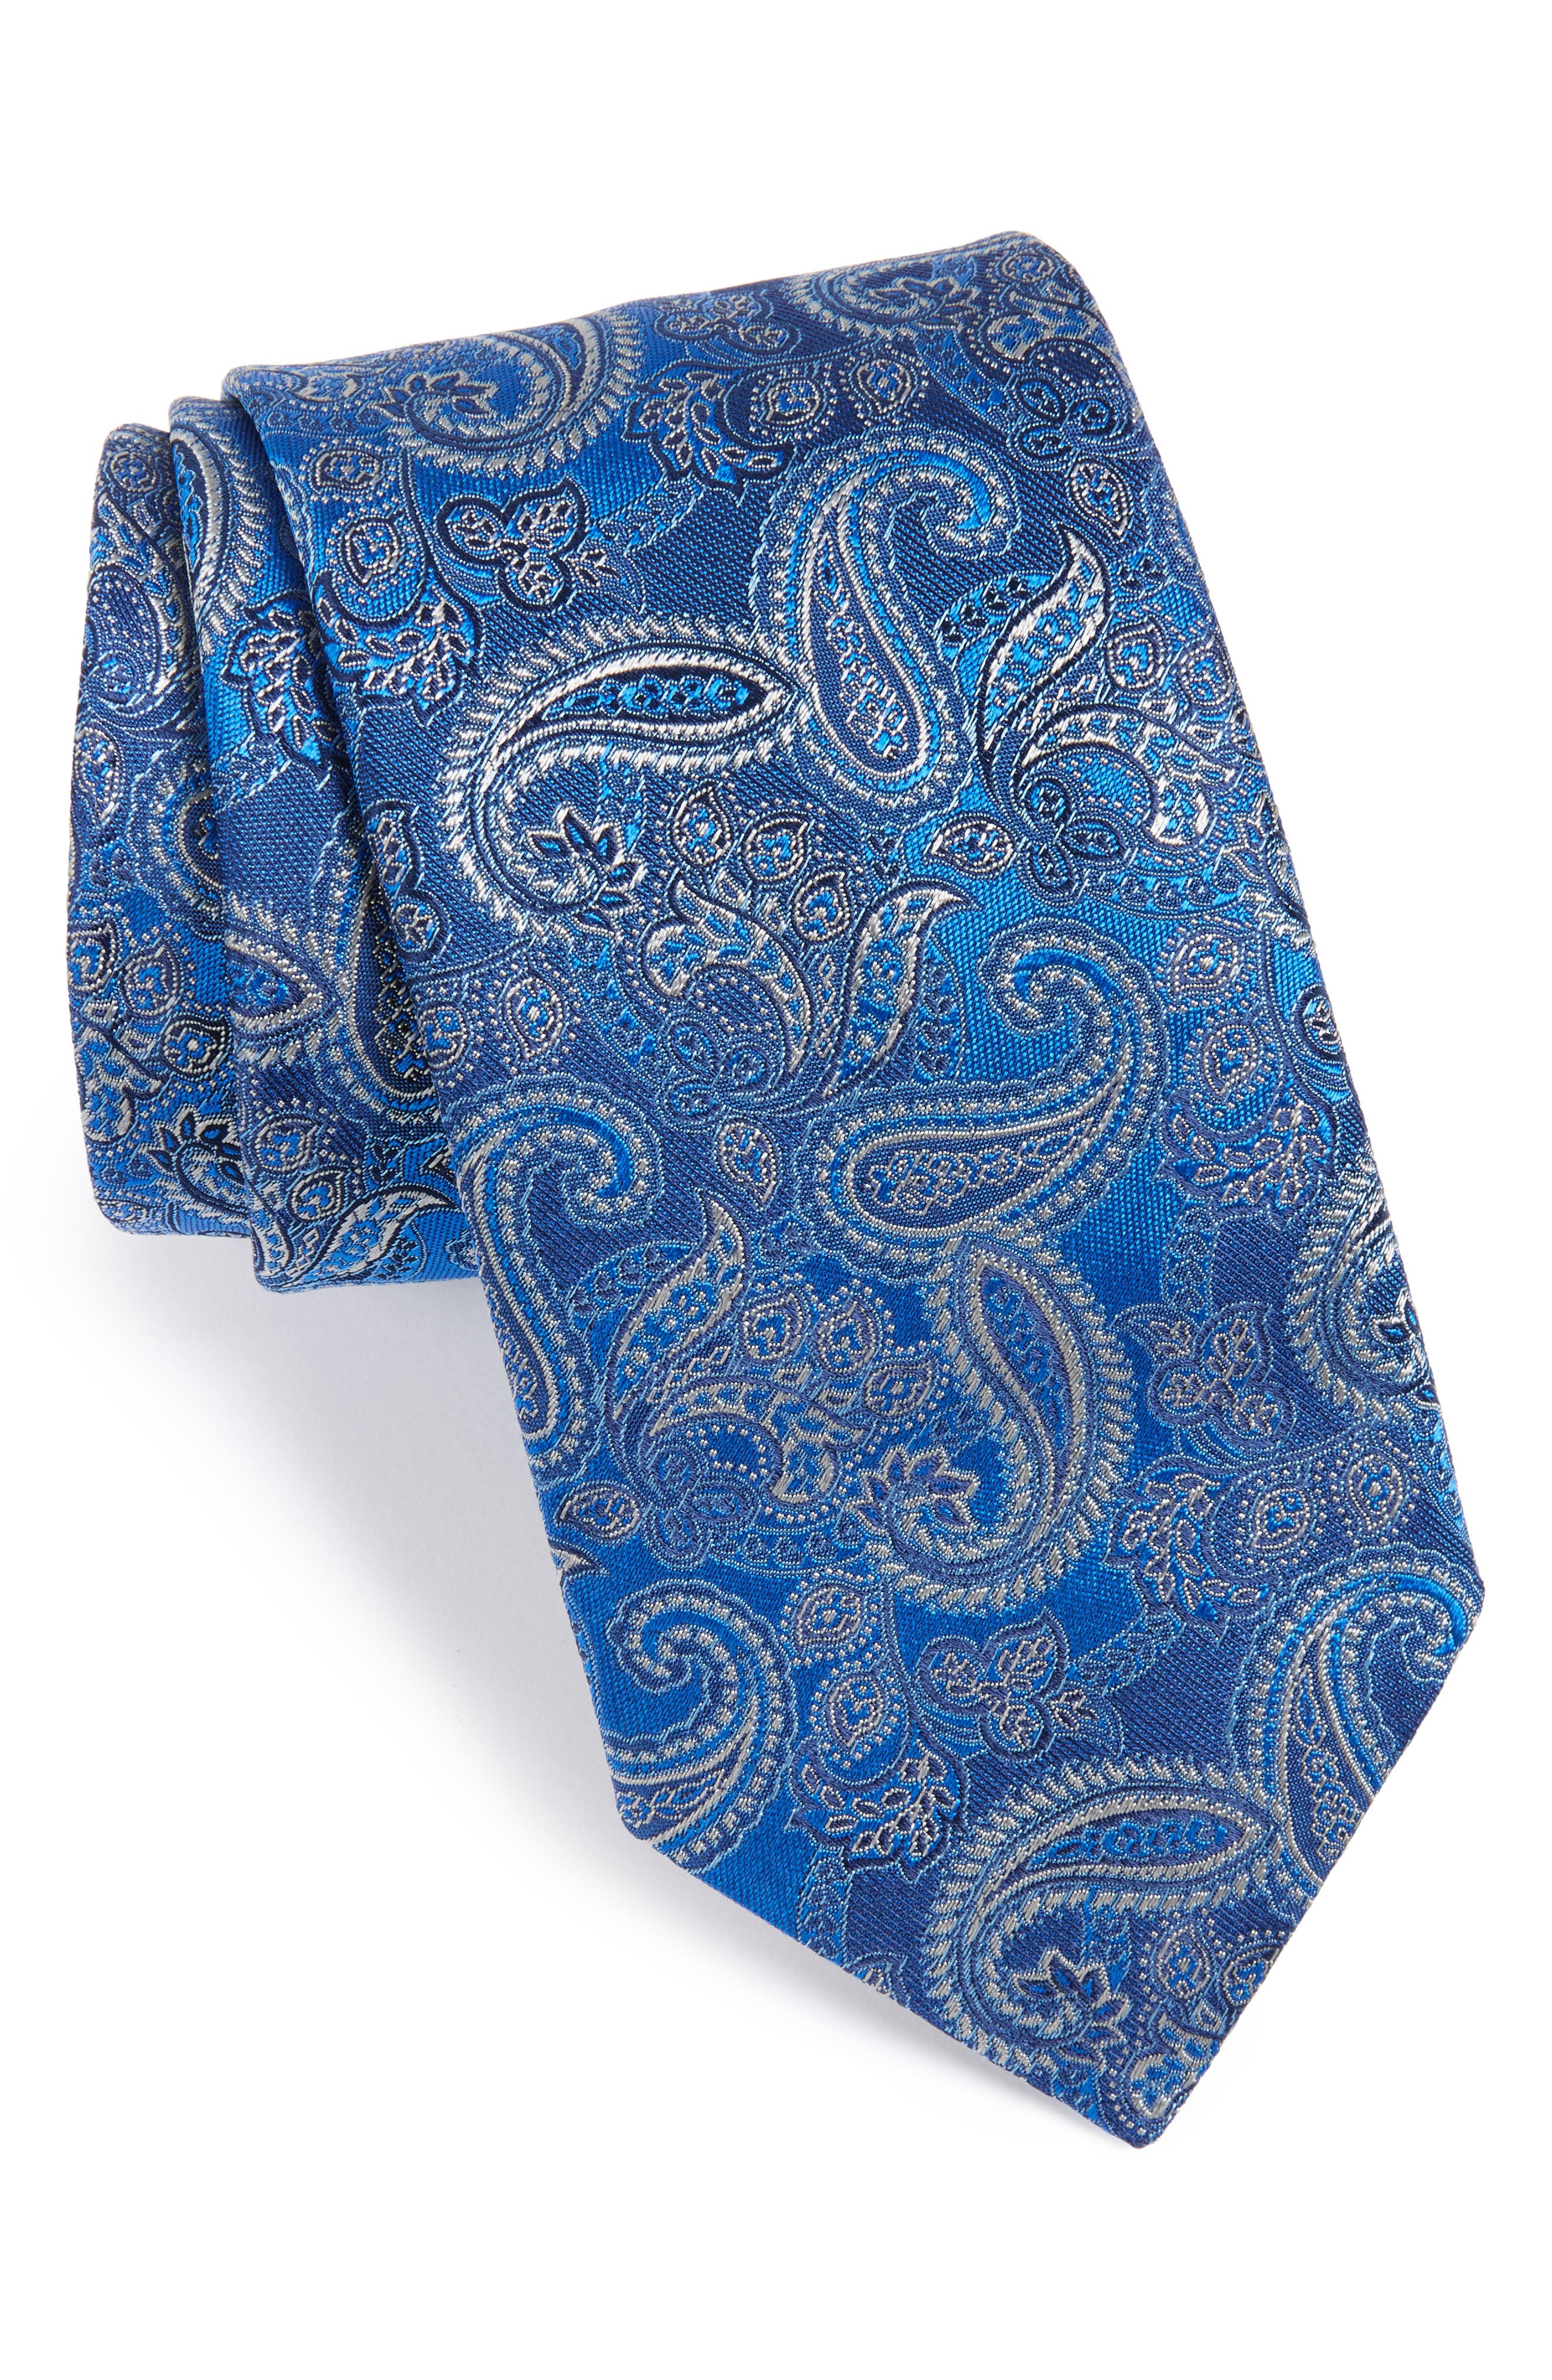 Paisley Silk Tie,                             Main thumbnail 1, color,                             400